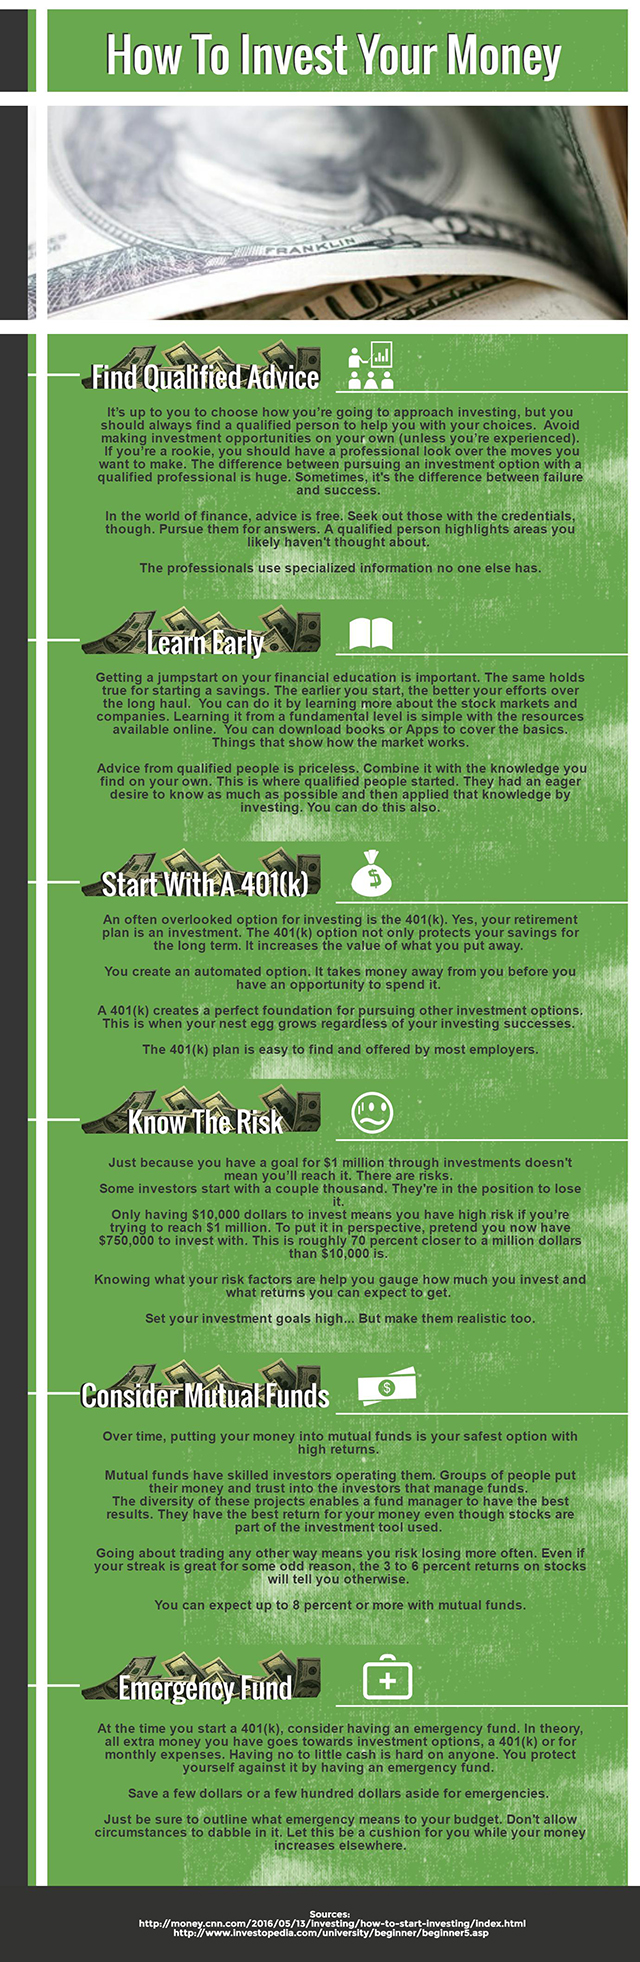 How To Invest Your Money - Infographic